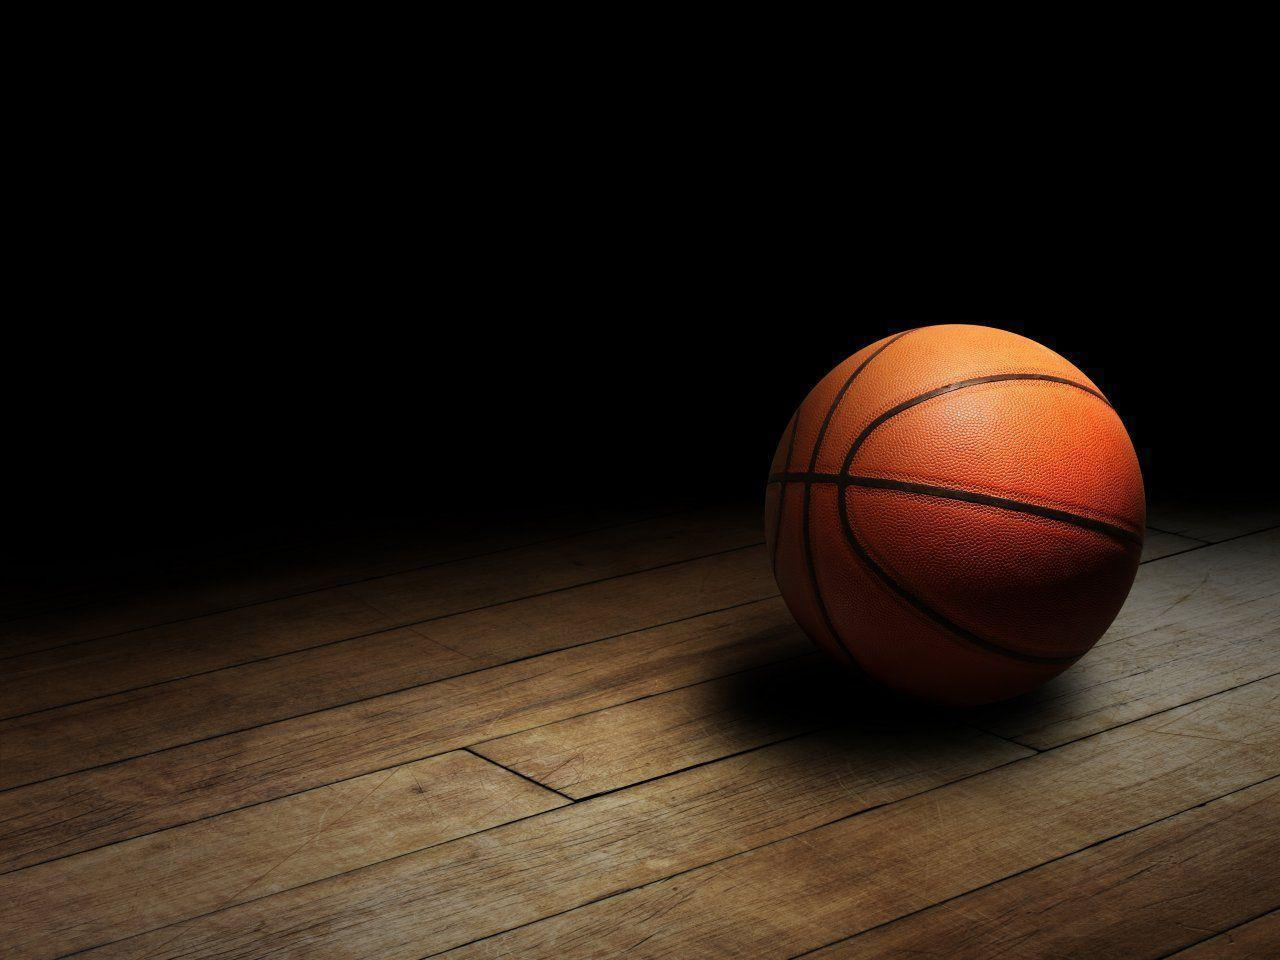 awesome basketball backgrounds wallpaper cave